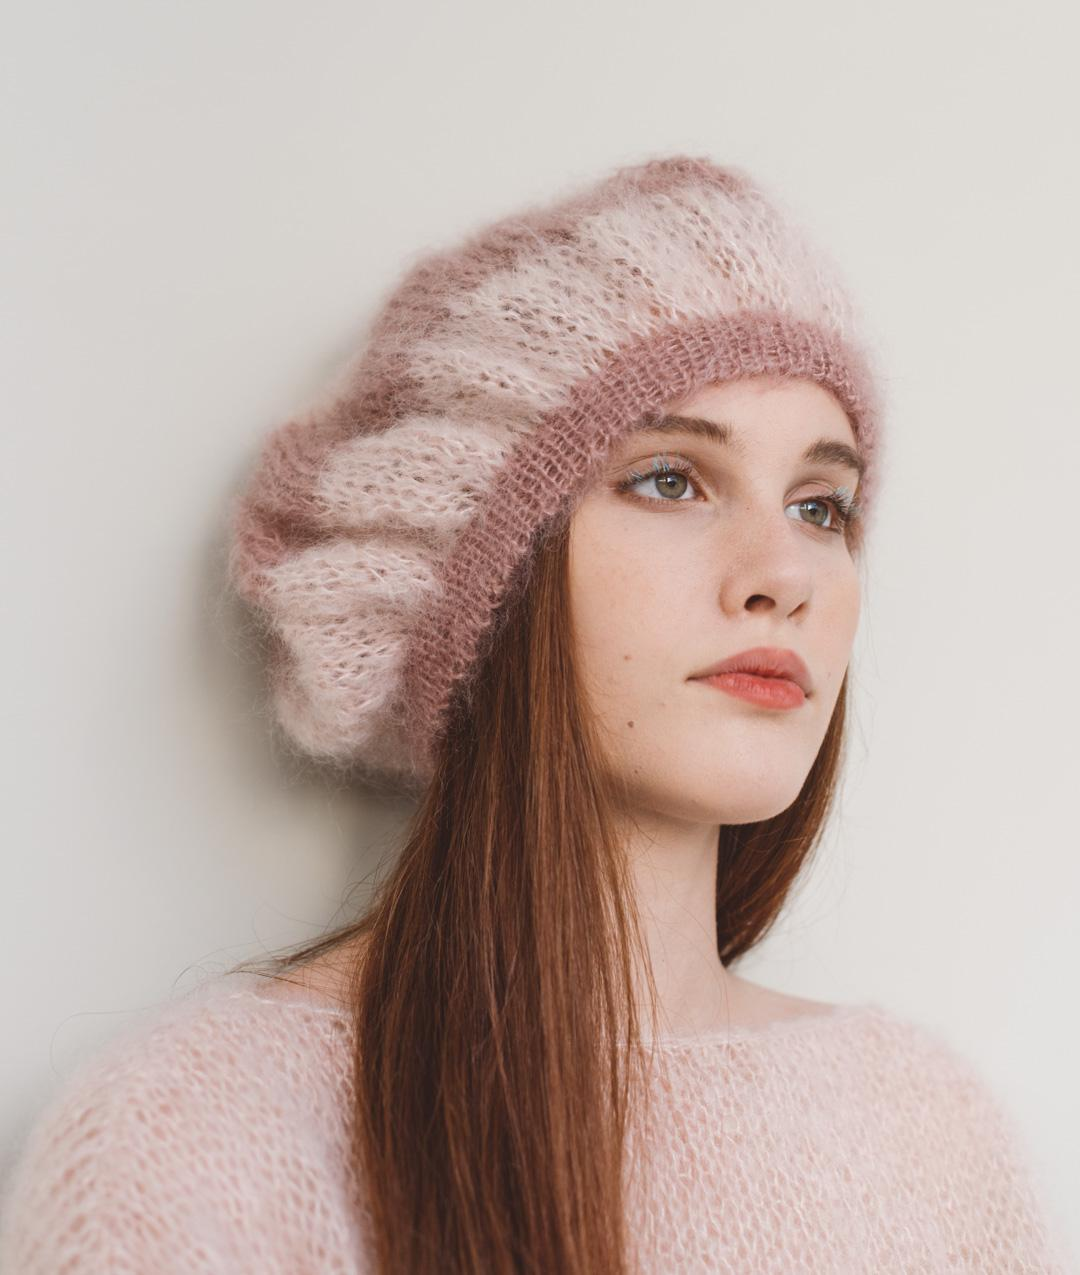 ceb034f8f0d7 Le Marais Beret  Wool Knit Kit forHats and Beanies online + Pattern ...